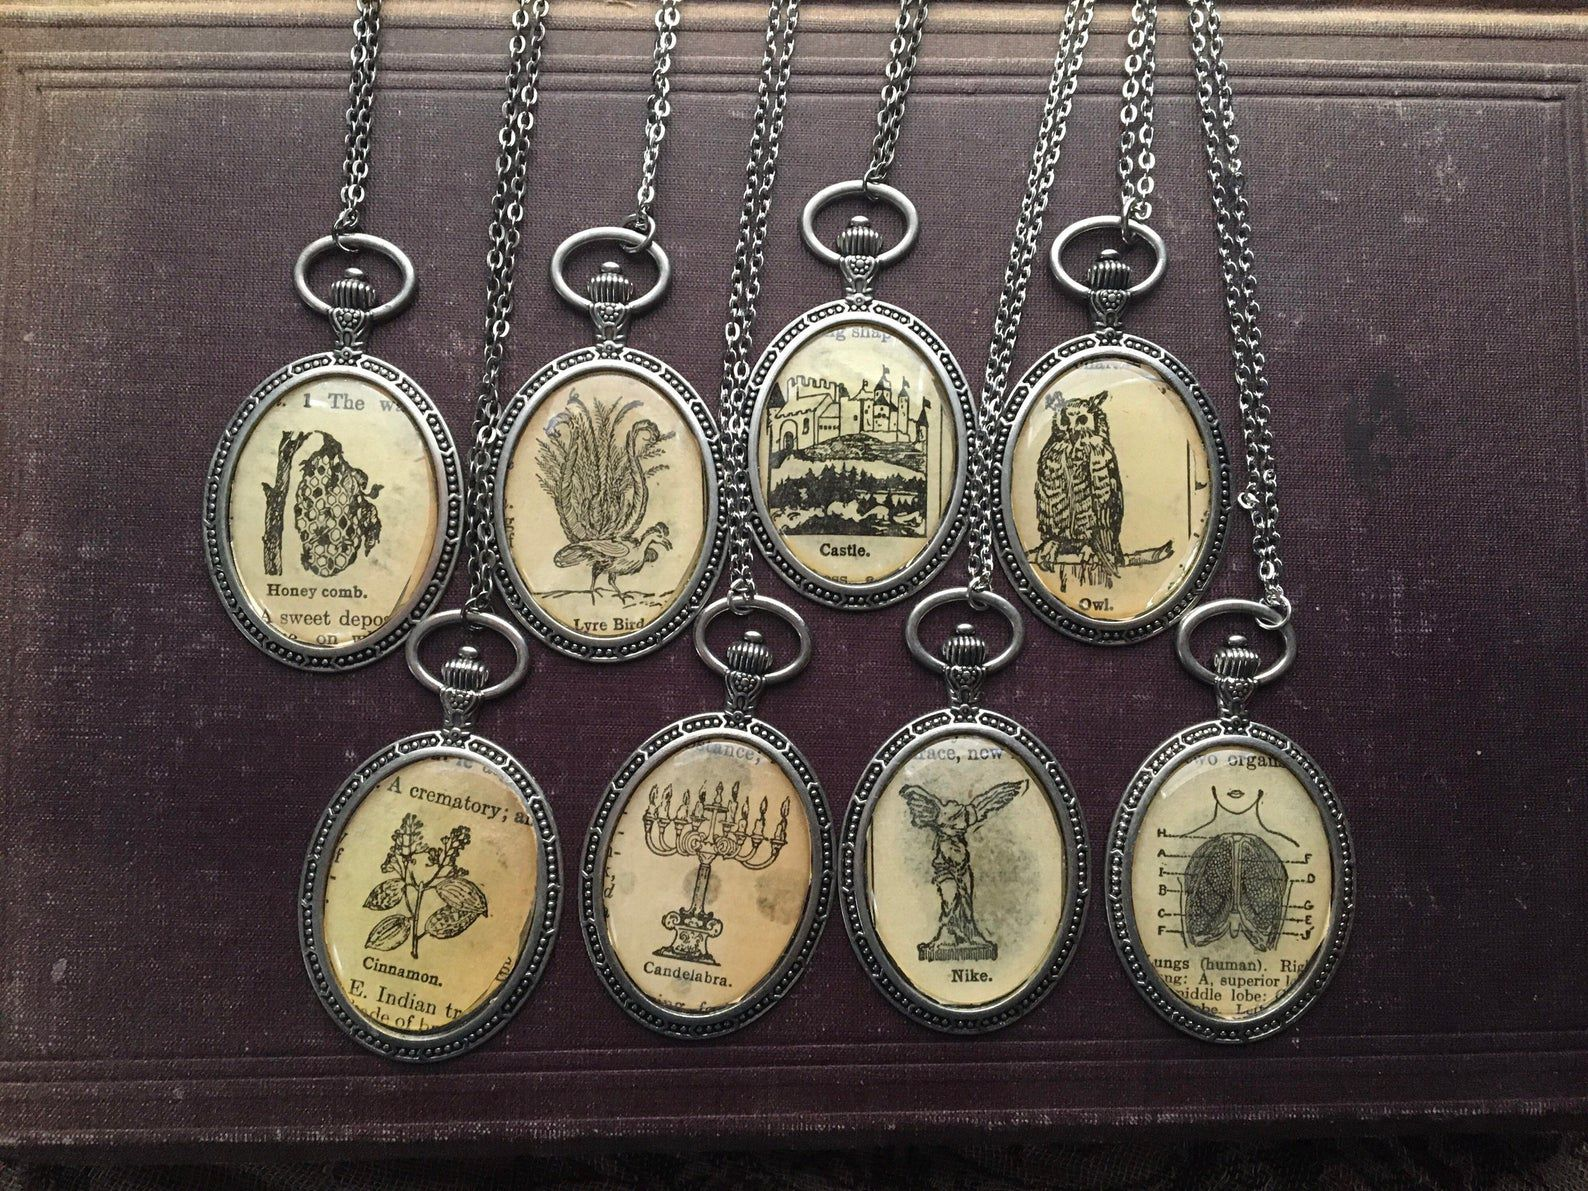 Image of eight different dictionary pages inside a necklace pendant.